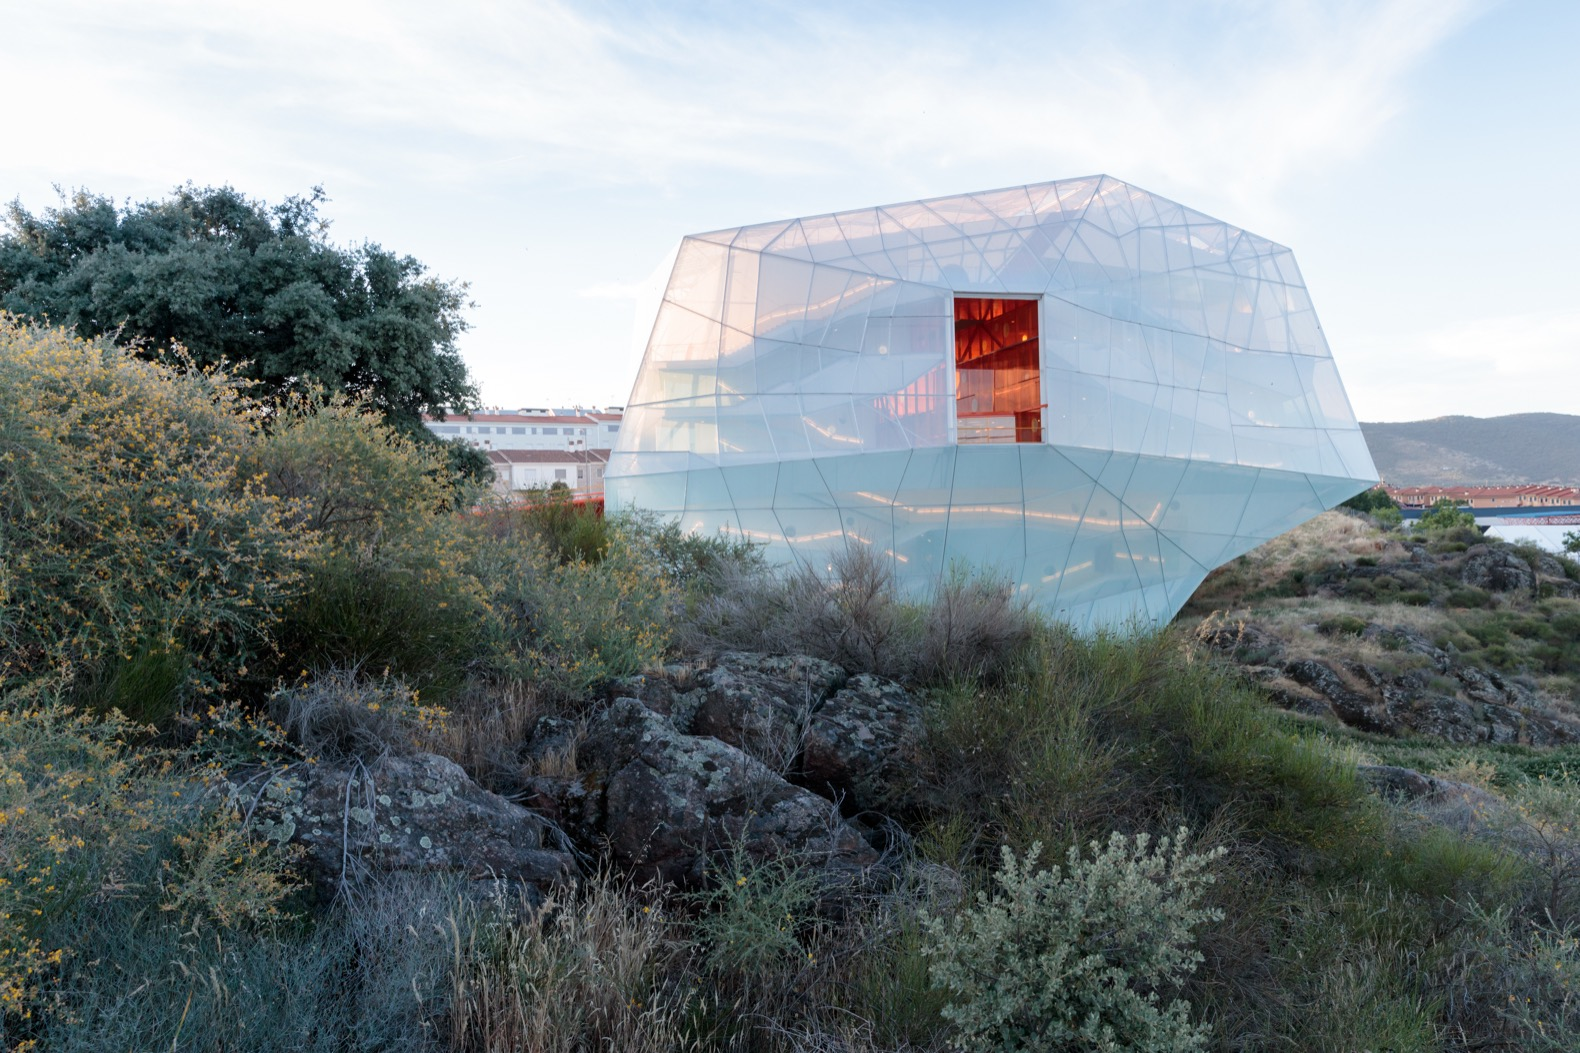 An auditorium uses translucent ETFE panels for a surreal look